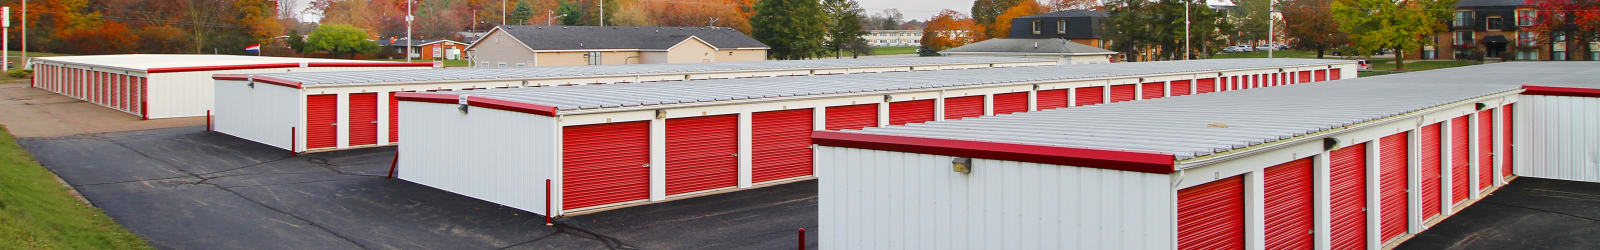 Find out what our storage units in Springfield have to offer